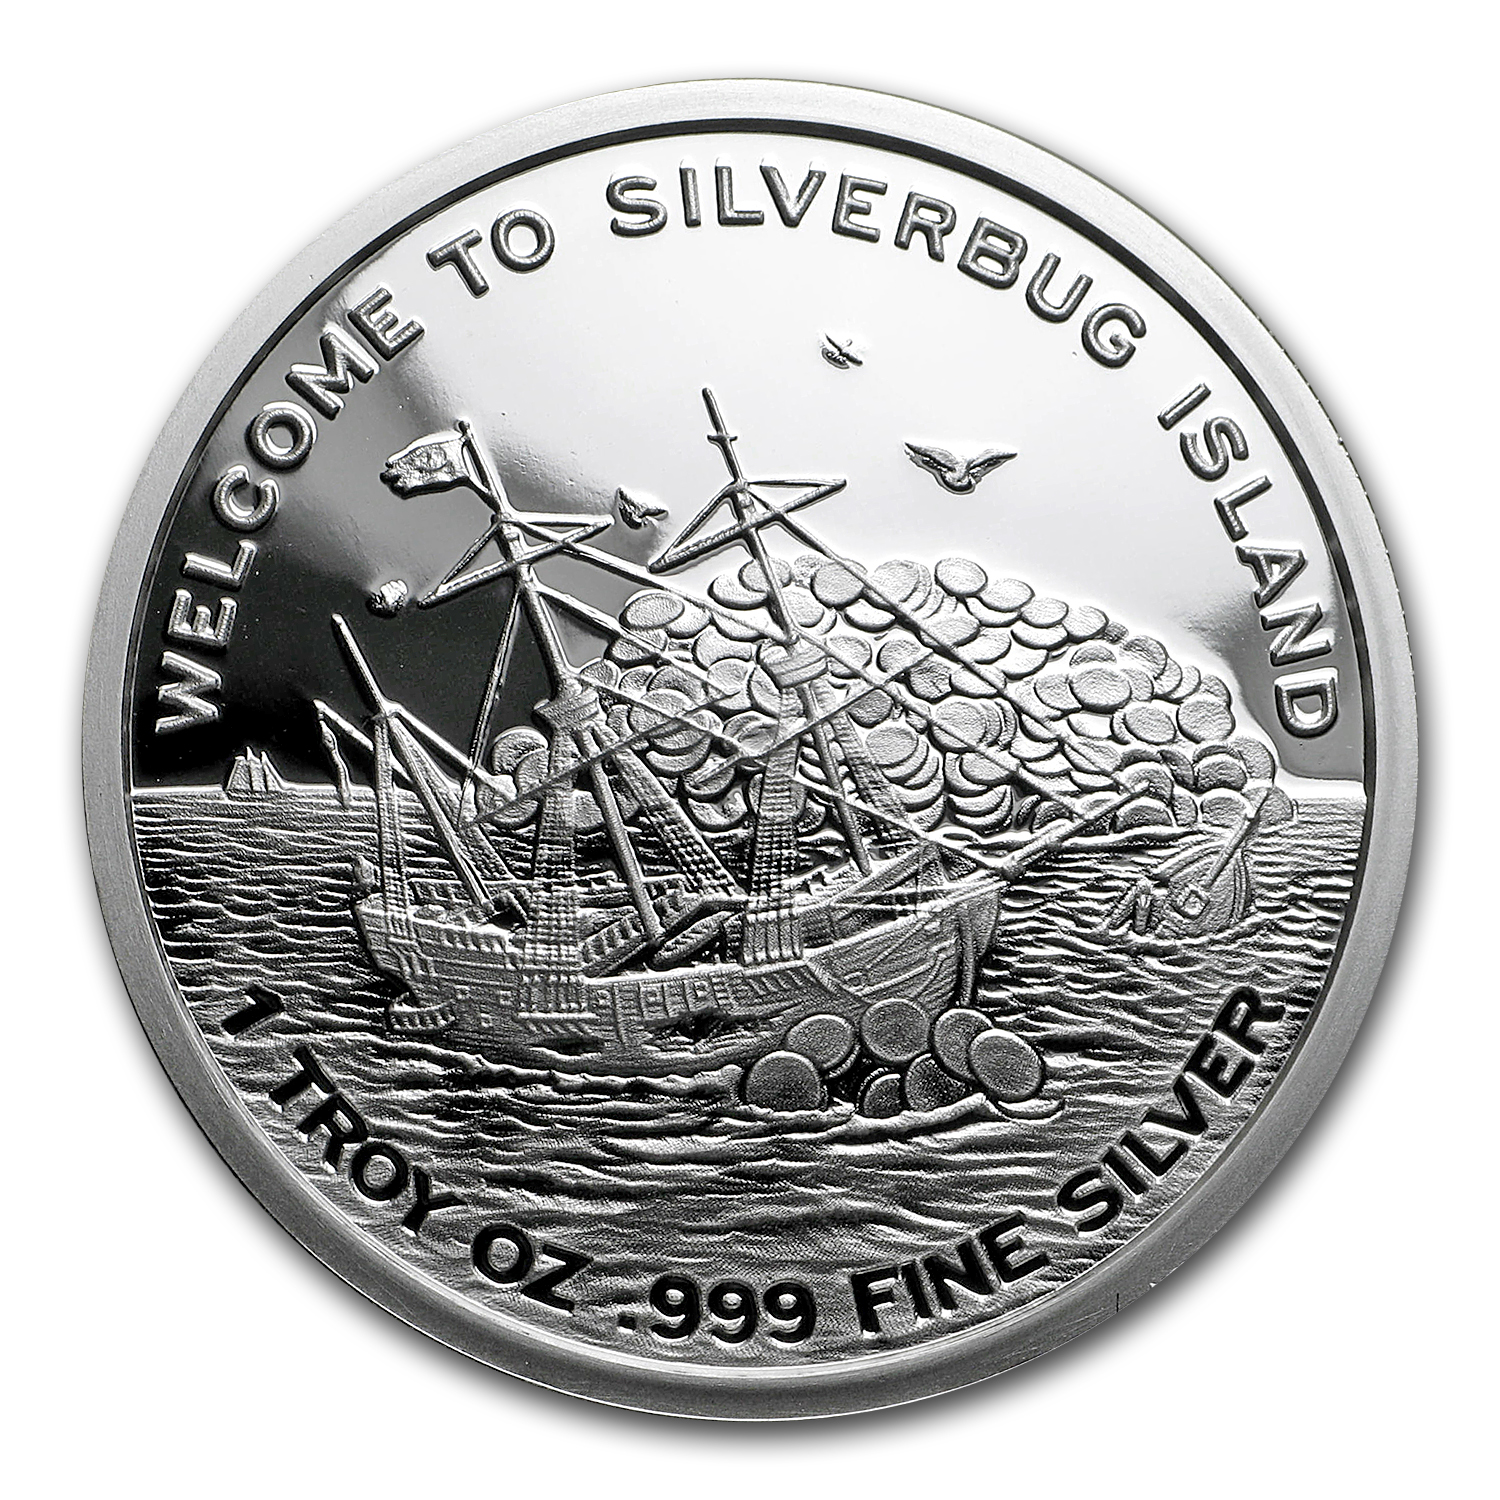 1 oz Silver Proof Round - 2016 Silverbug Island Mermaid